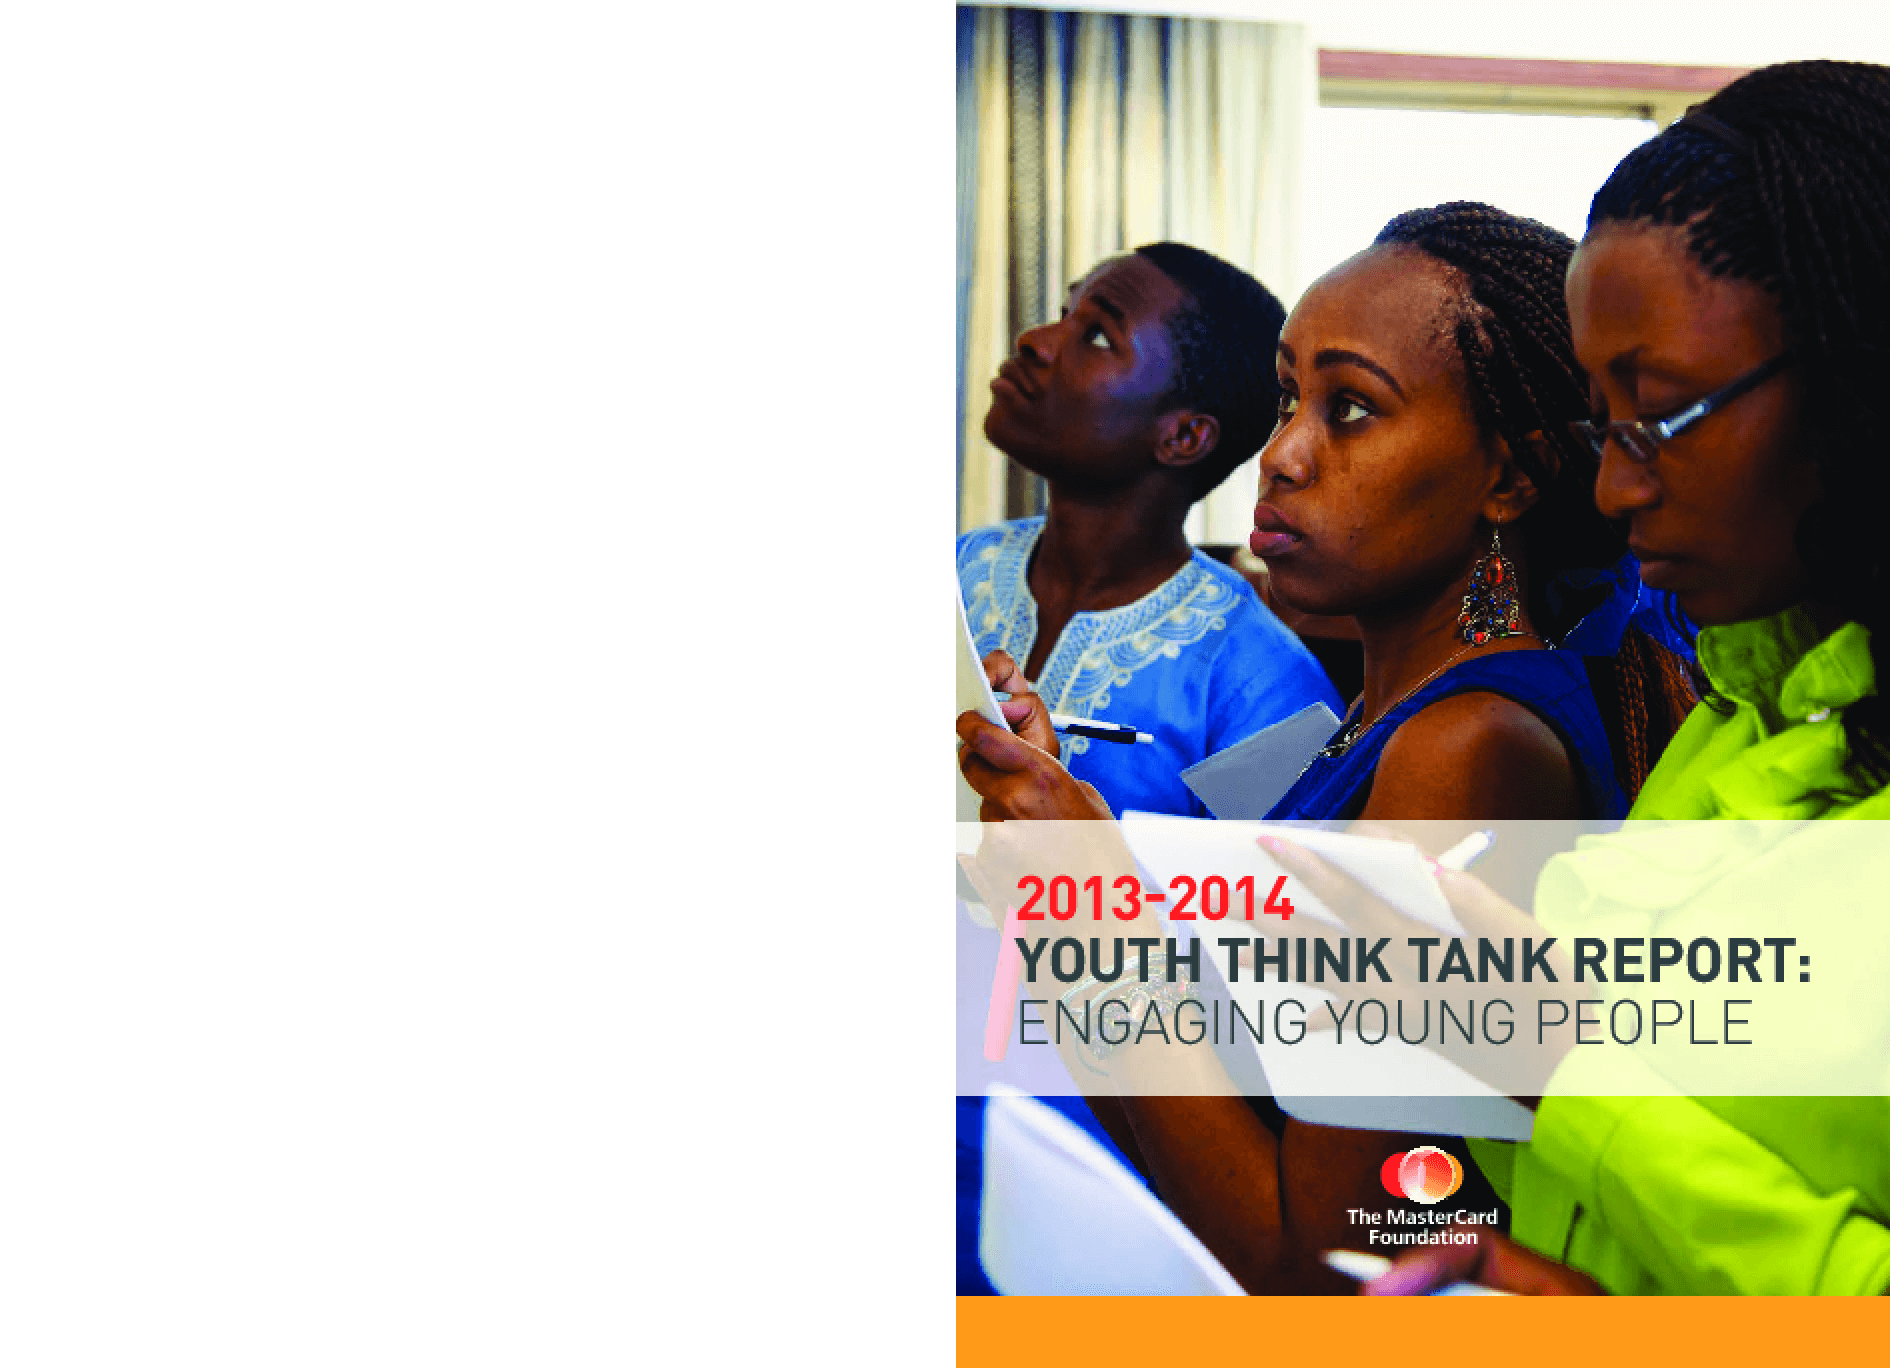 2013-2014 Youth Think Tank Report: Engaging Young People